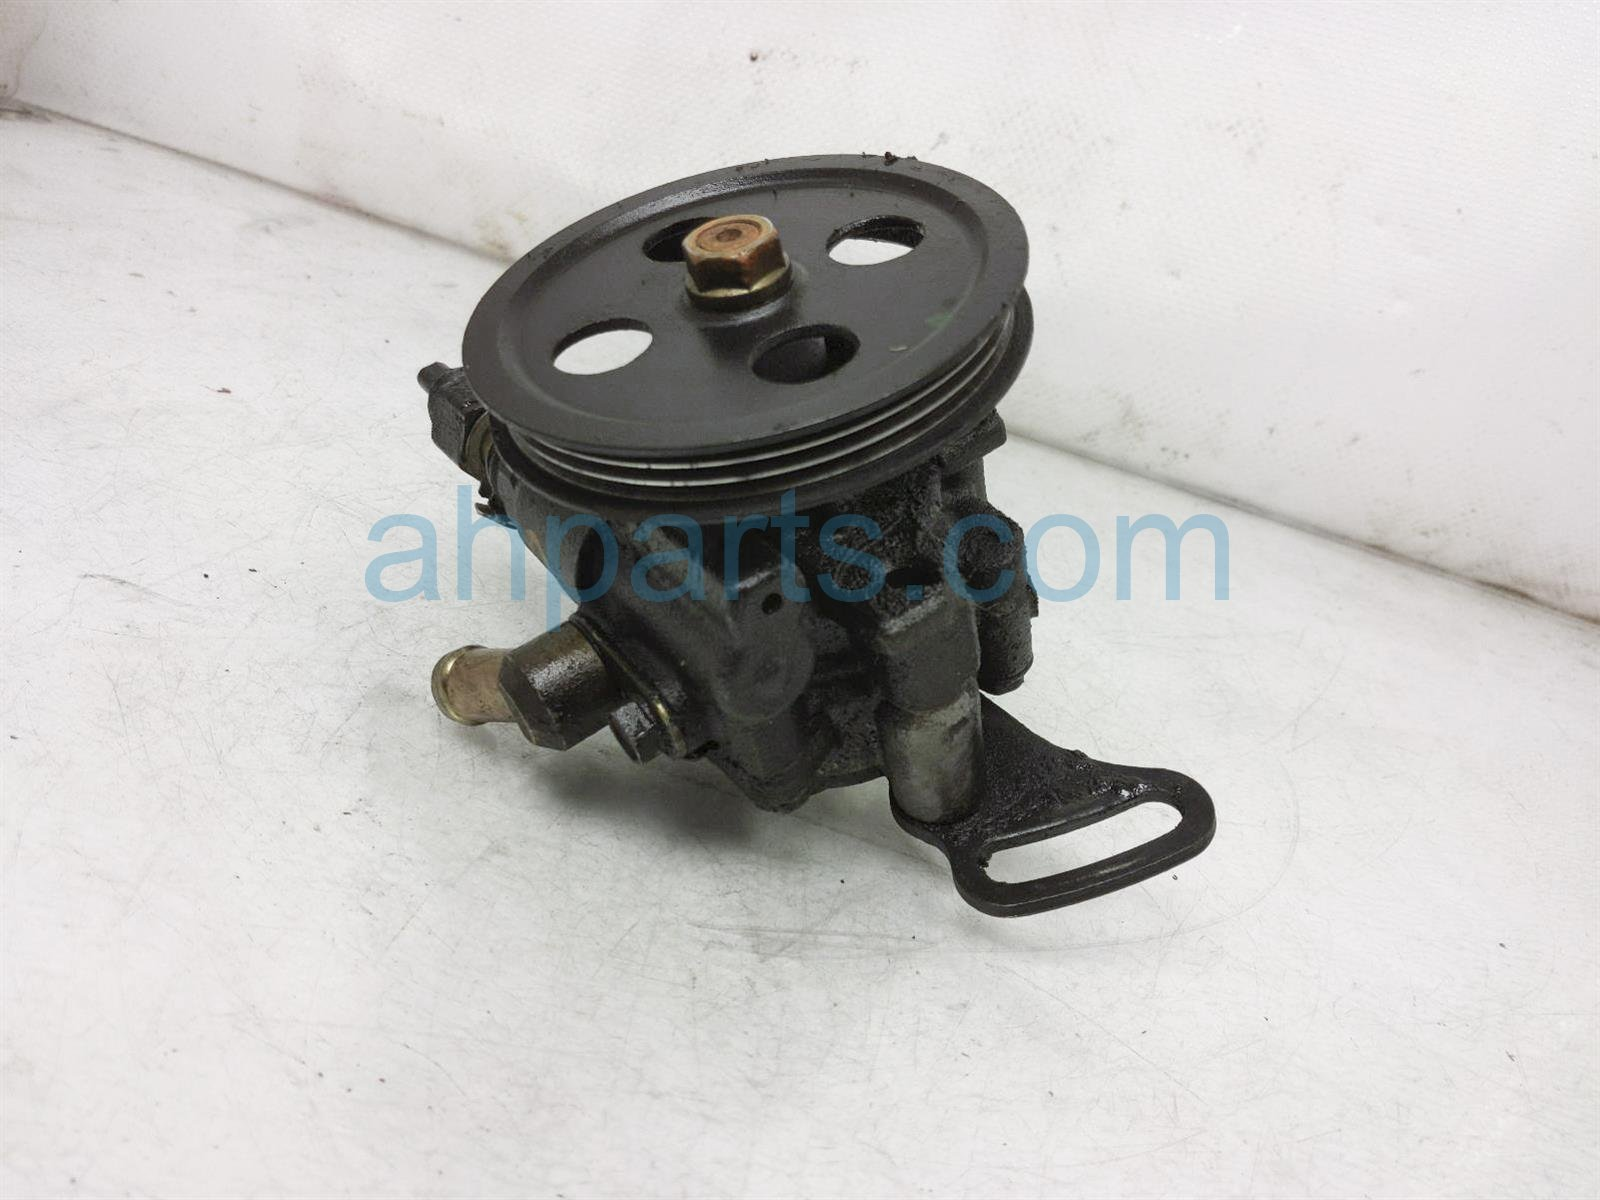 2001 Toyota Camry Power Steering Pump 44320 06030 Replacement